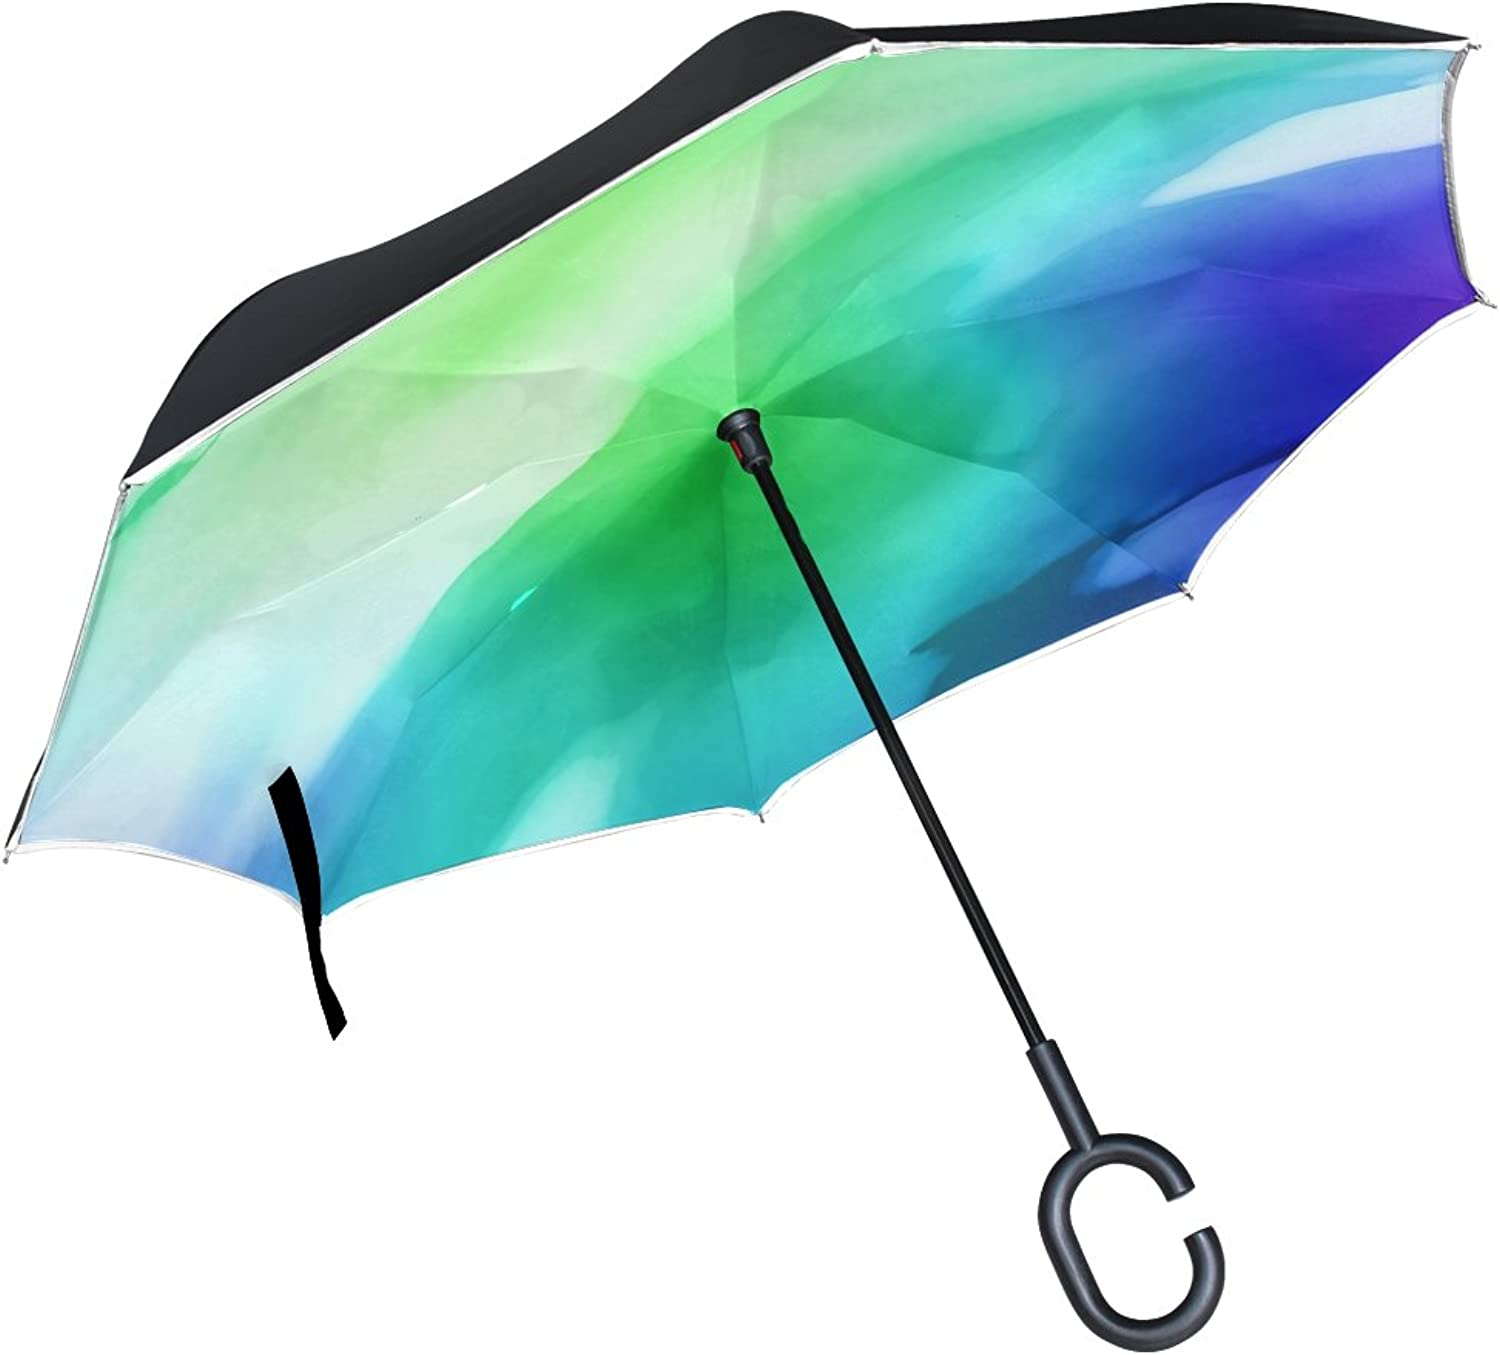 Double Layer Ingreened Watercolour Watercolor Paint Ink Blend blueee Stain Umbrellas Reverse Folding Umbrella Windproof Uv Predection Big Straight Umbrella for Car Rain Outdoor with CShaped Handle